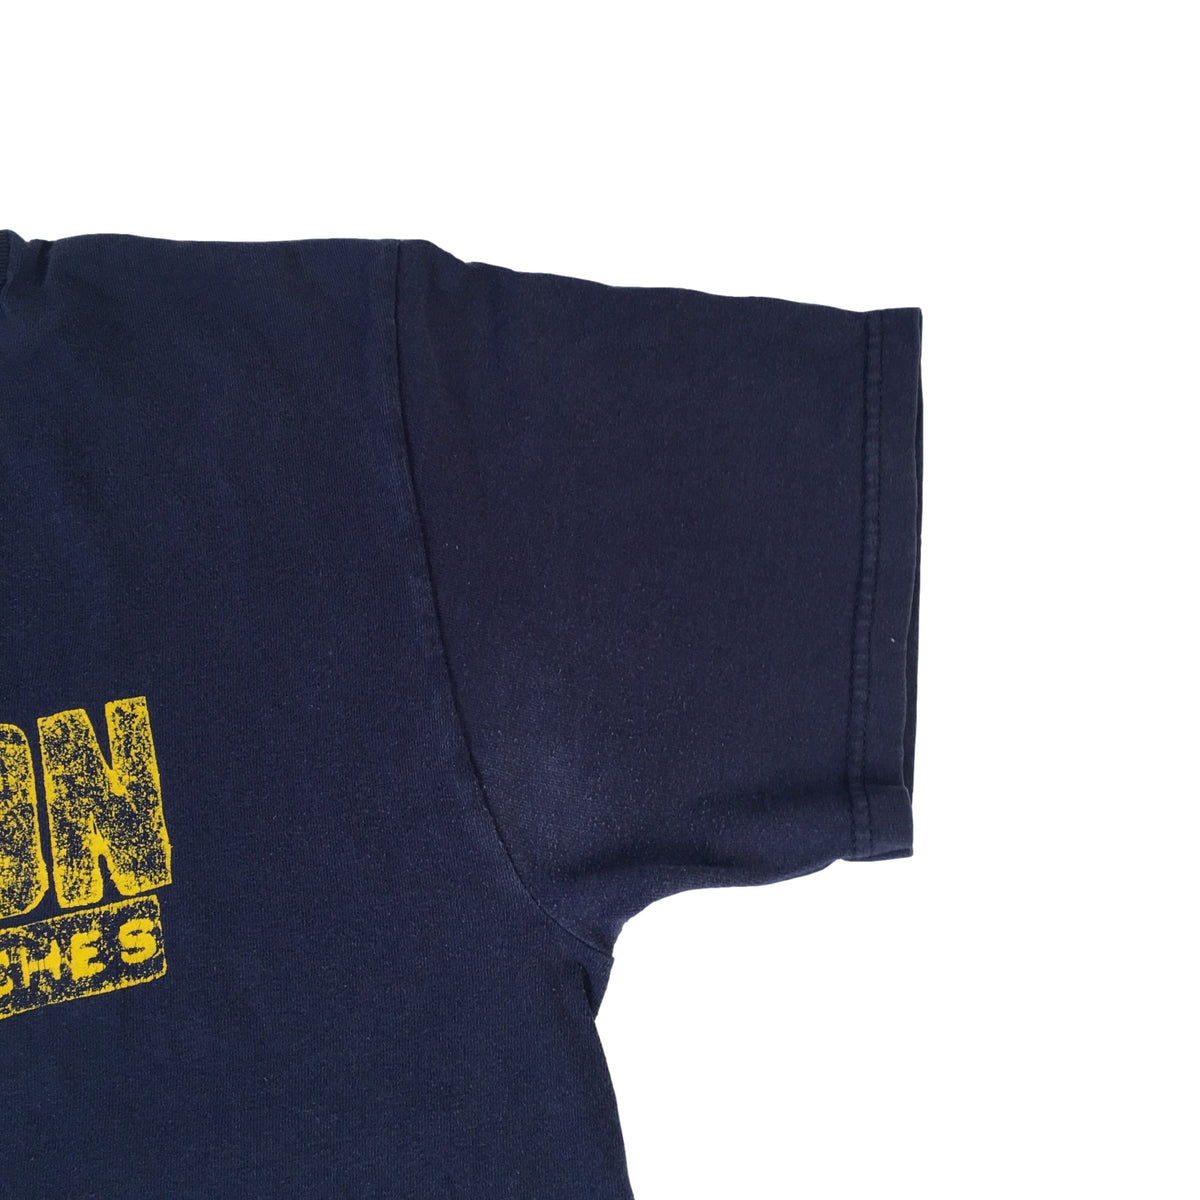 "Vintage Carry On ""Roll With The Punches"" T-Shirt"